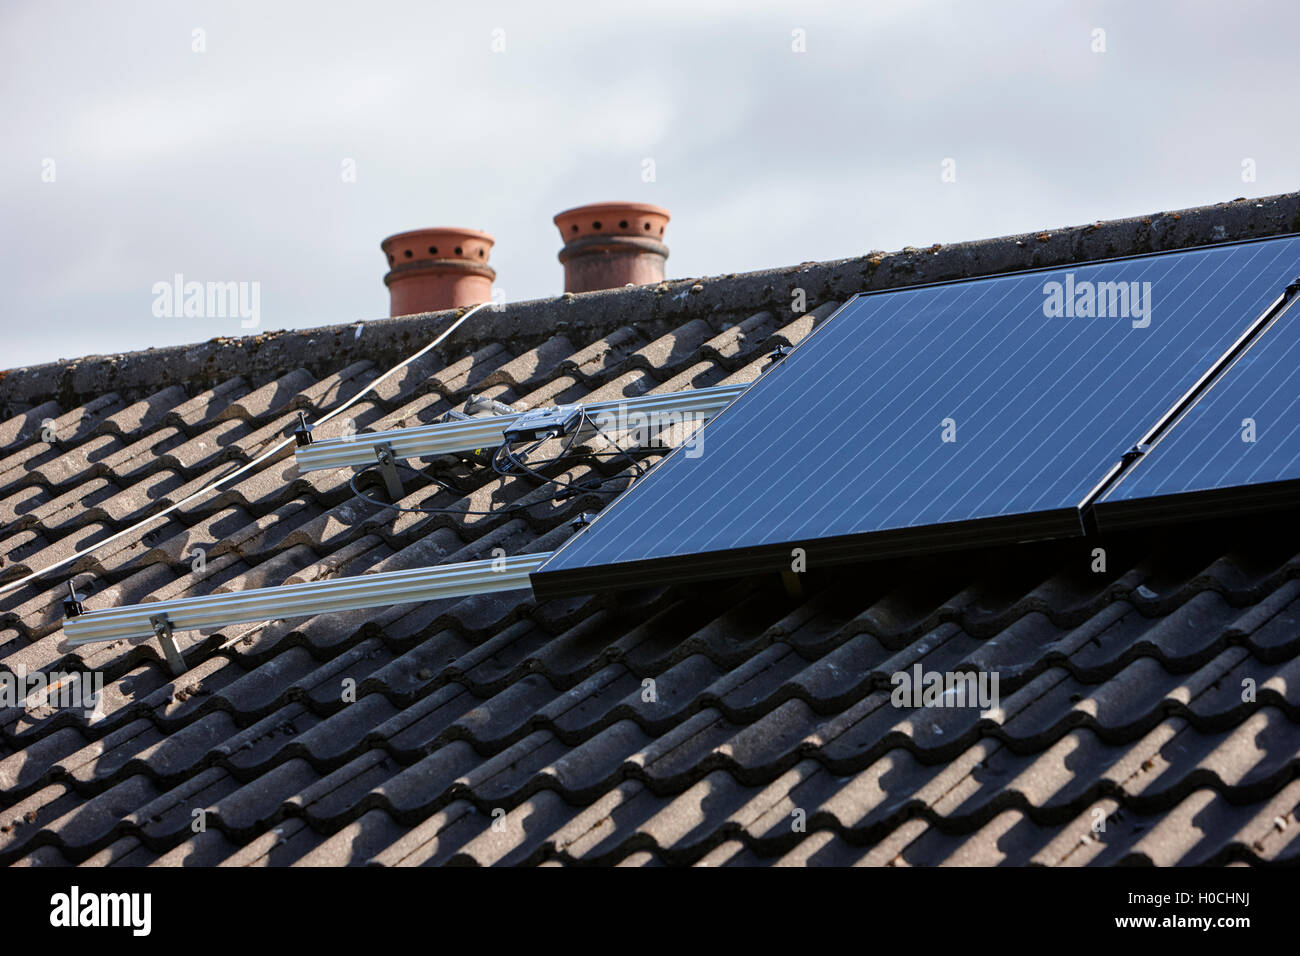 panels mounting rails and micro inverters in a domestic solar panel installation in the uk - Stock Image